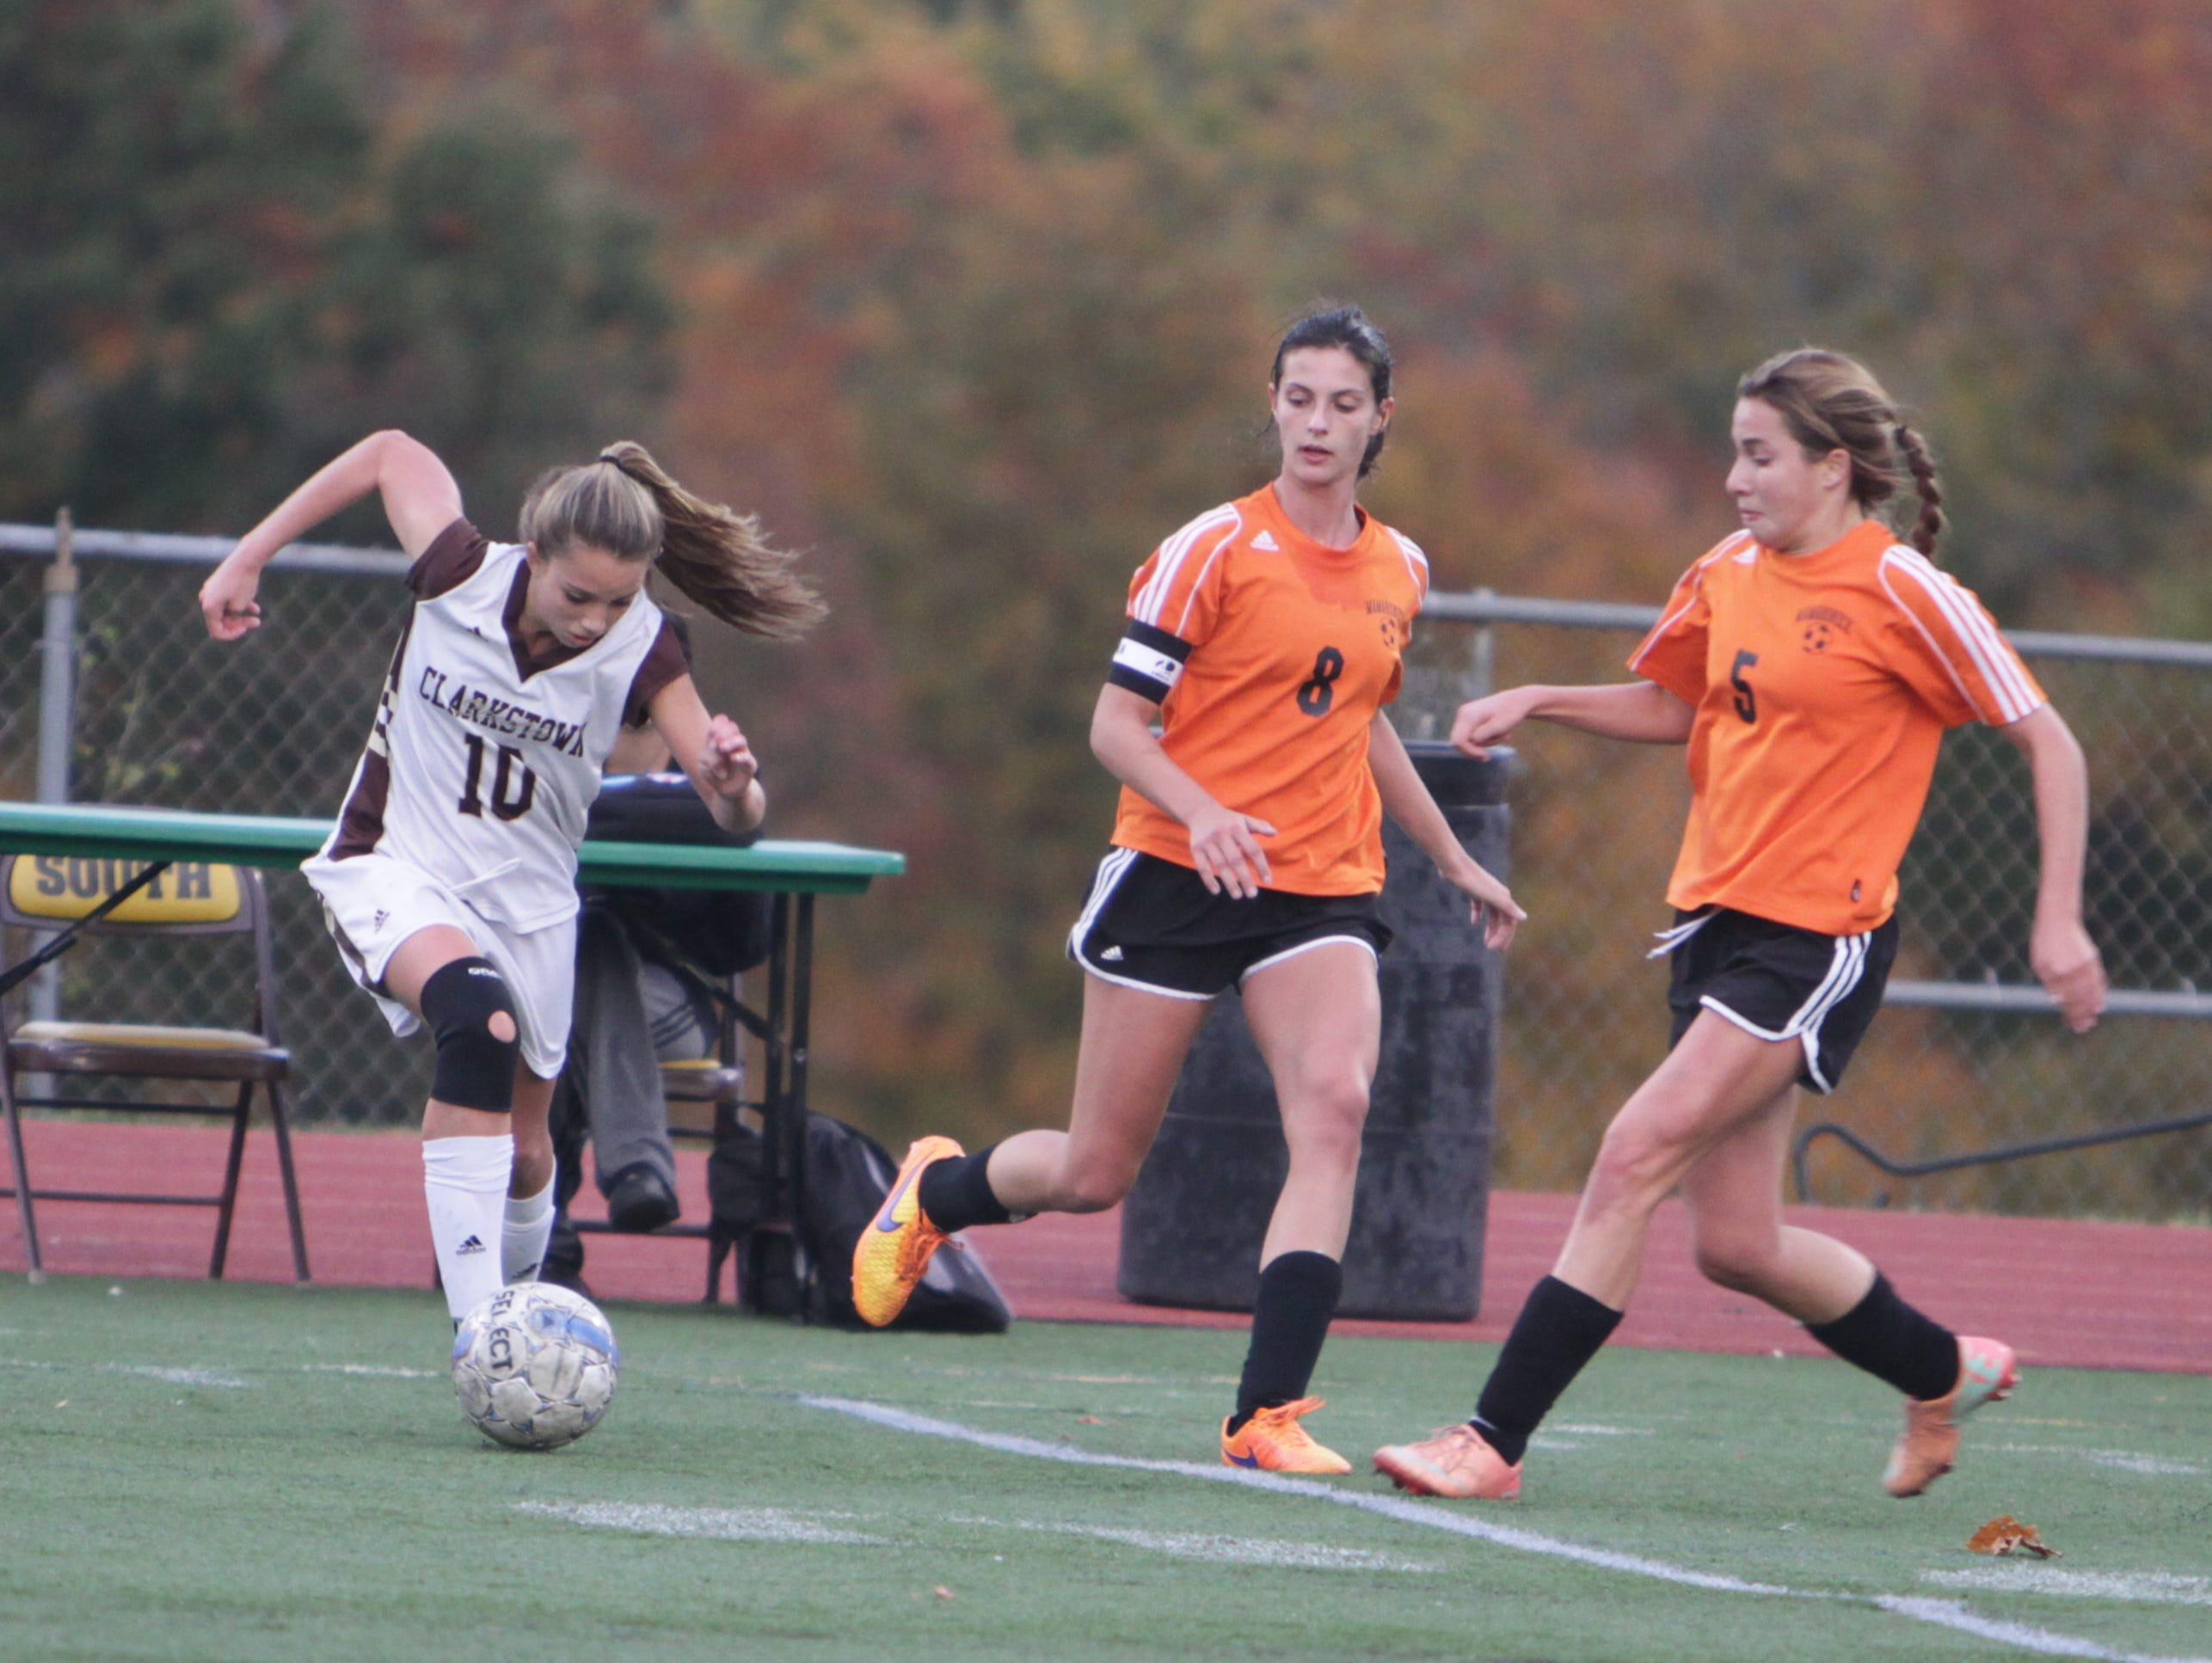 Clarkstown South defeated Mamaroneck 1-0 in overtime in a Section 1, Class AA quarterfinal game at Clarkstown South High School on Tuesday, October 27th, 2015.